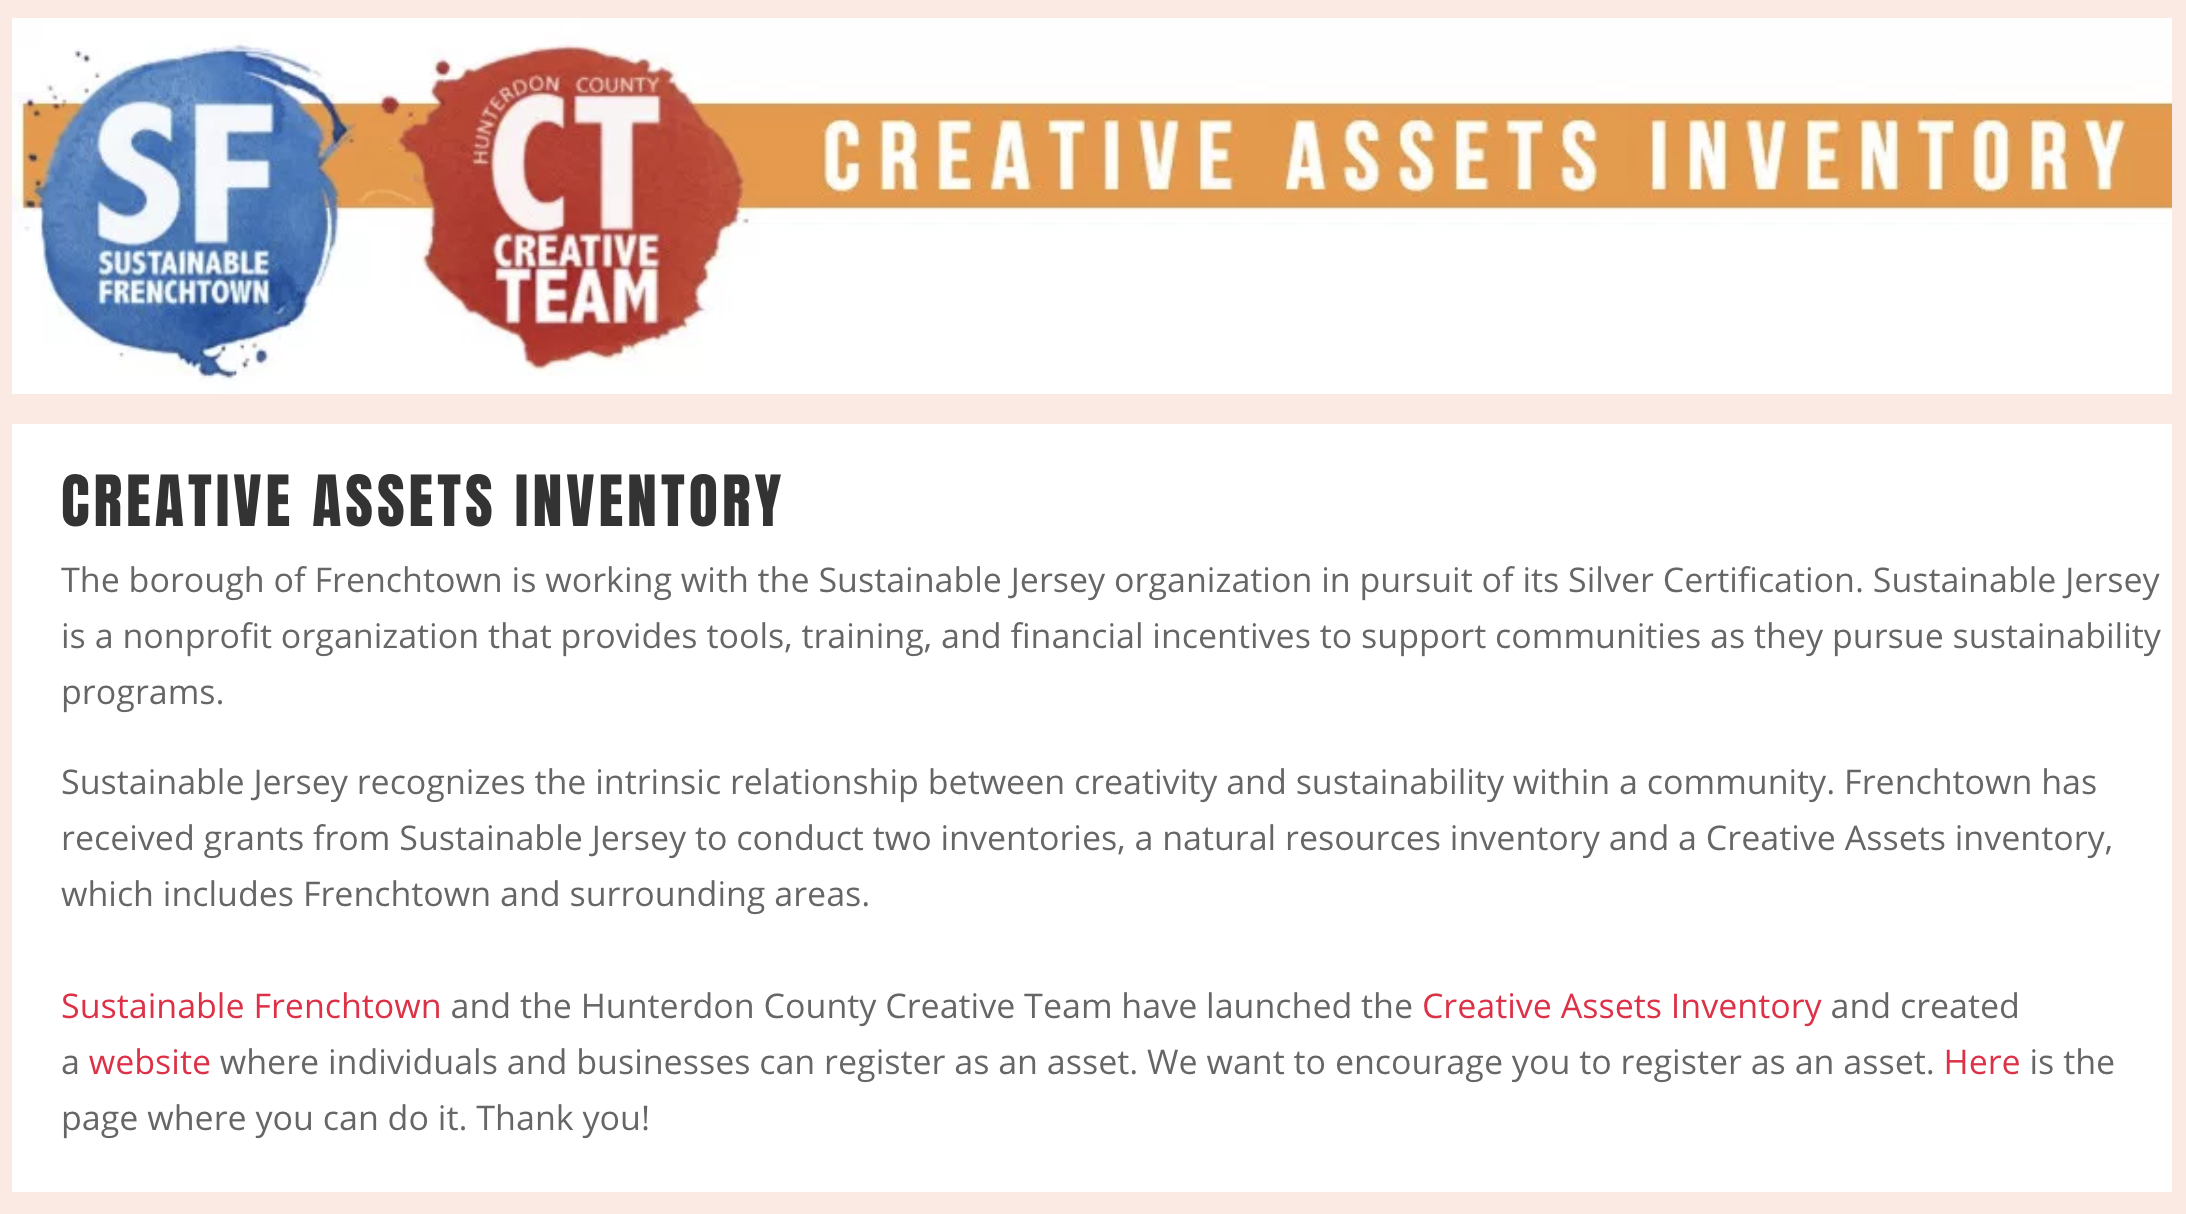 About the Creative Assets Inventory